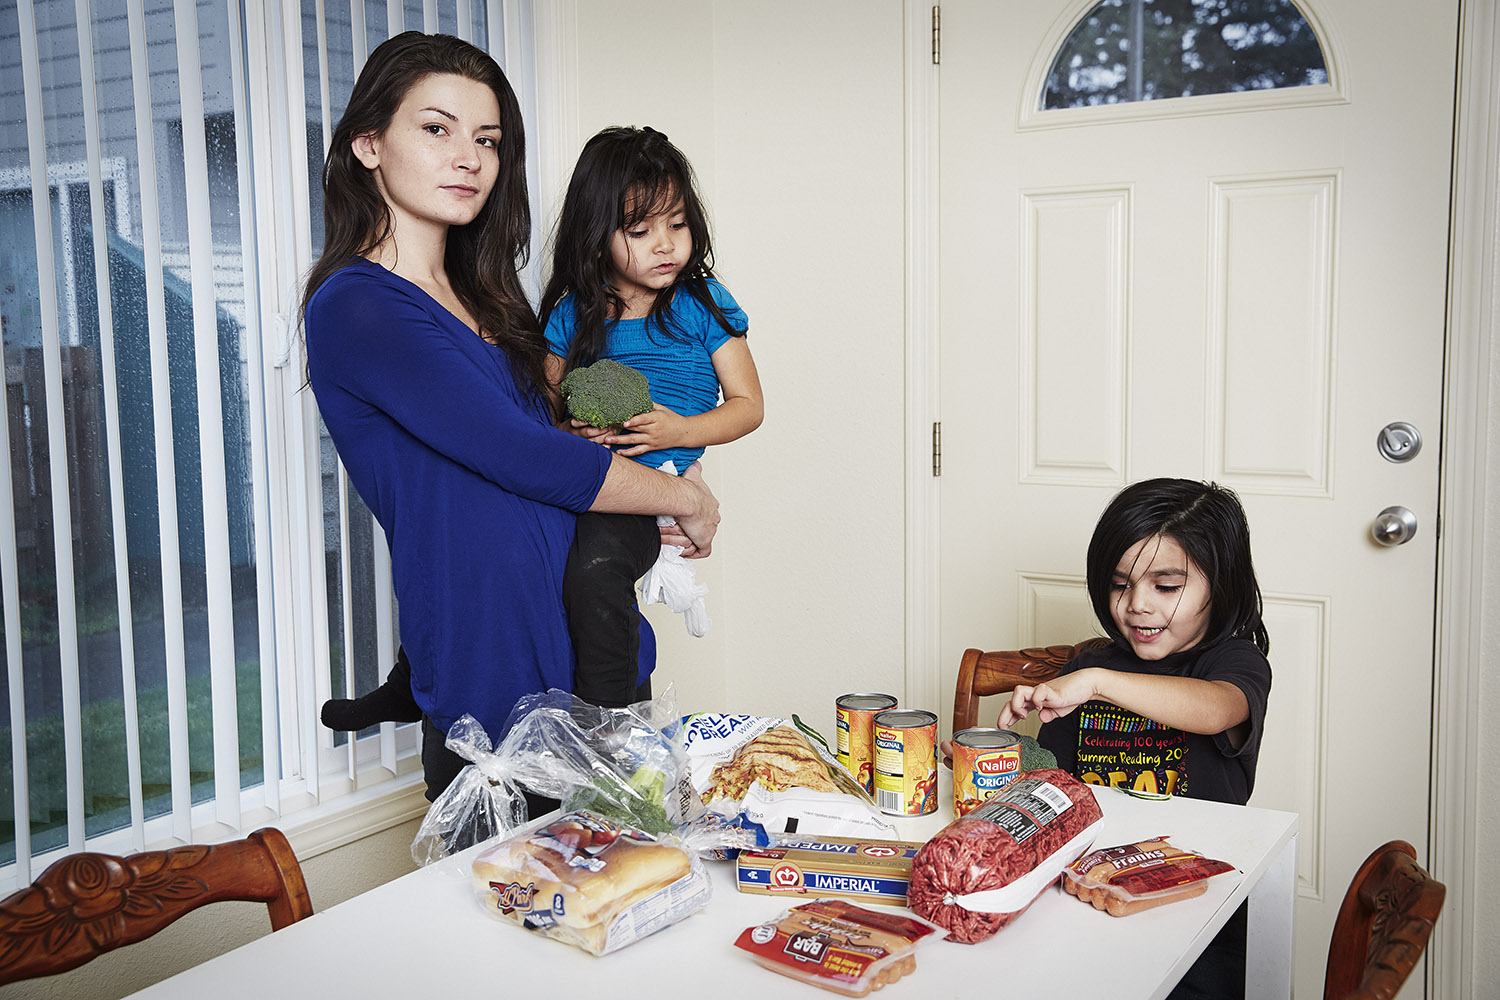 Jennifer Noonan at home with her two children, Portland, Ore. Before the cut, she was receiving $524/month in SNAP benefits. Now she receives $475/month.